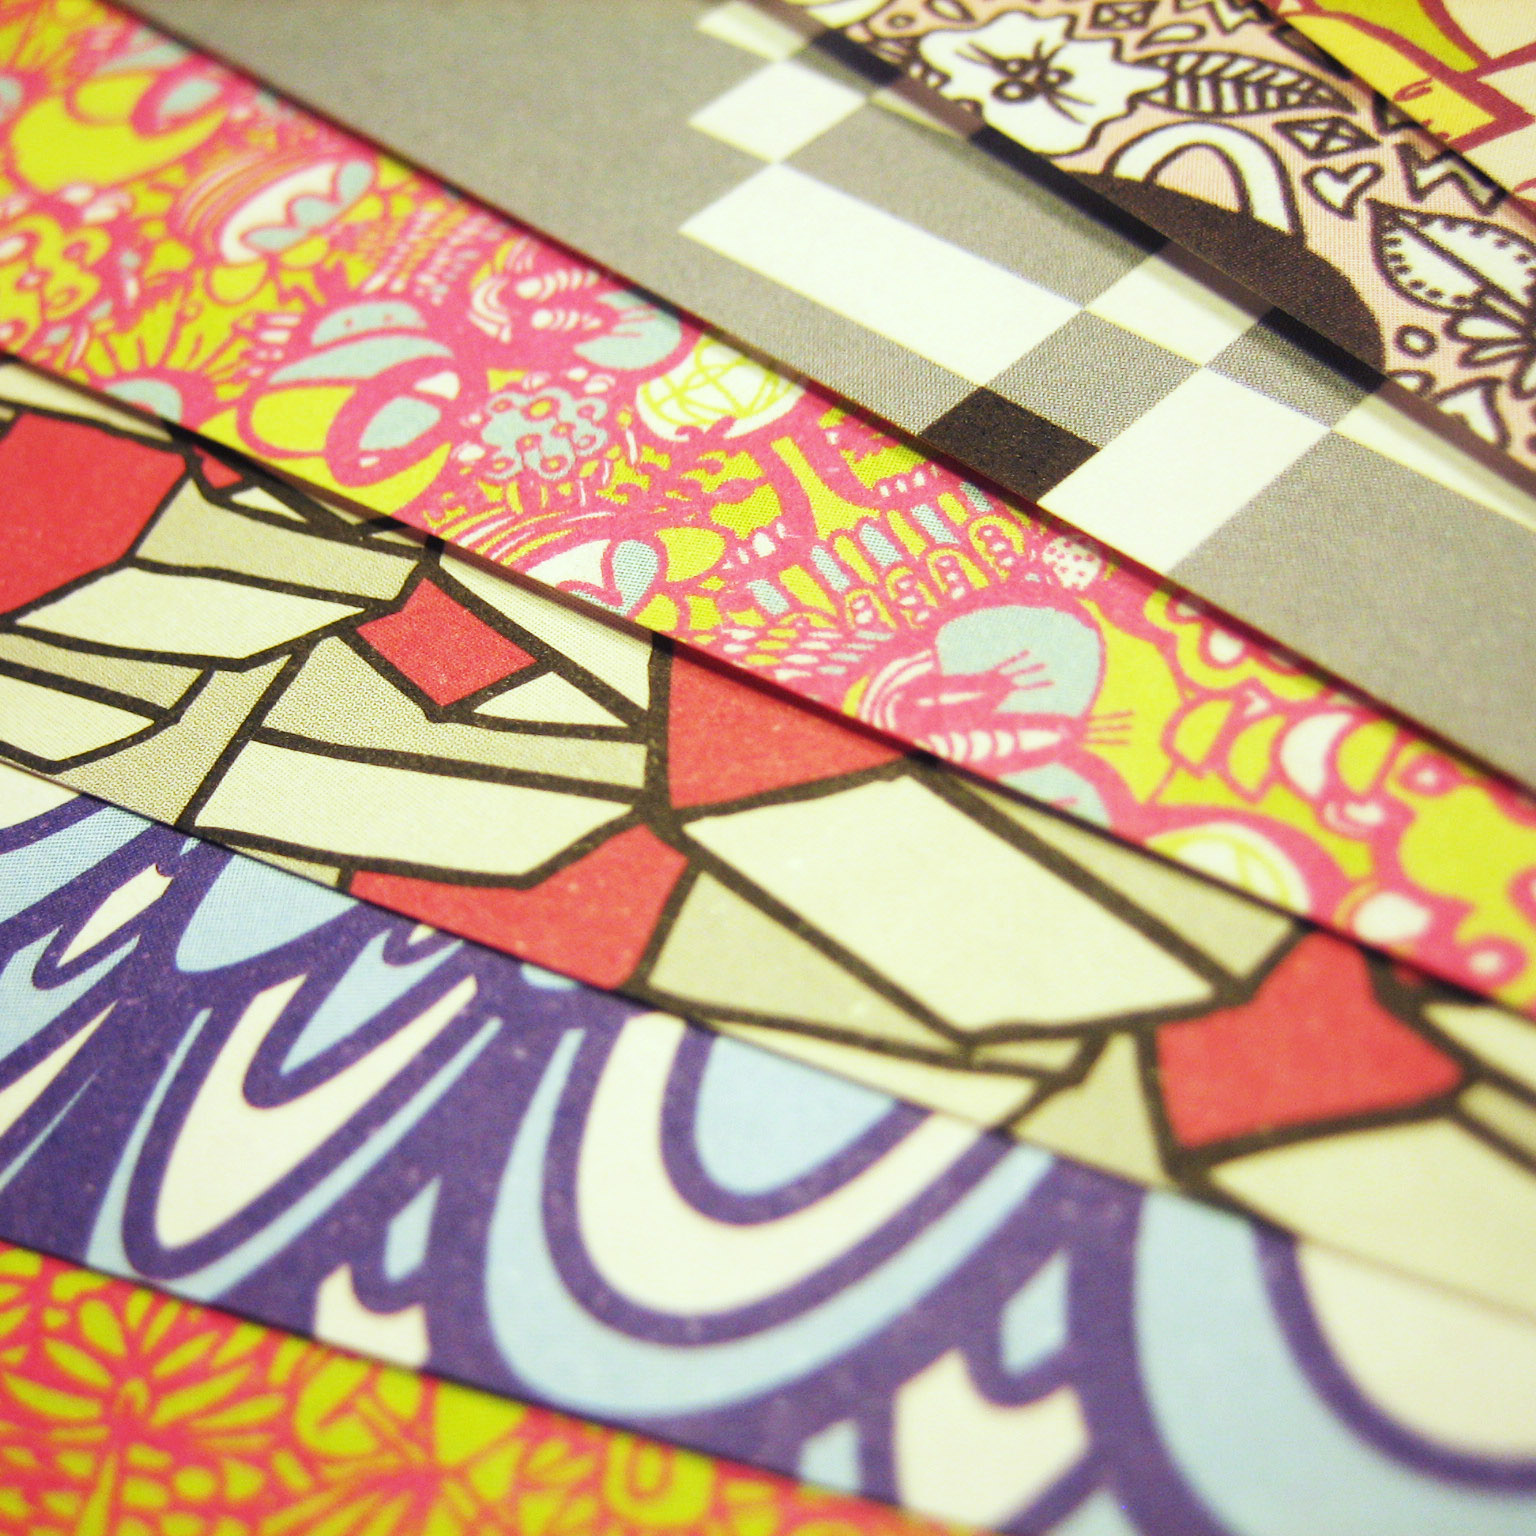 Designer Pattern Origami Paper - a cutting-edge range of exclusive designs